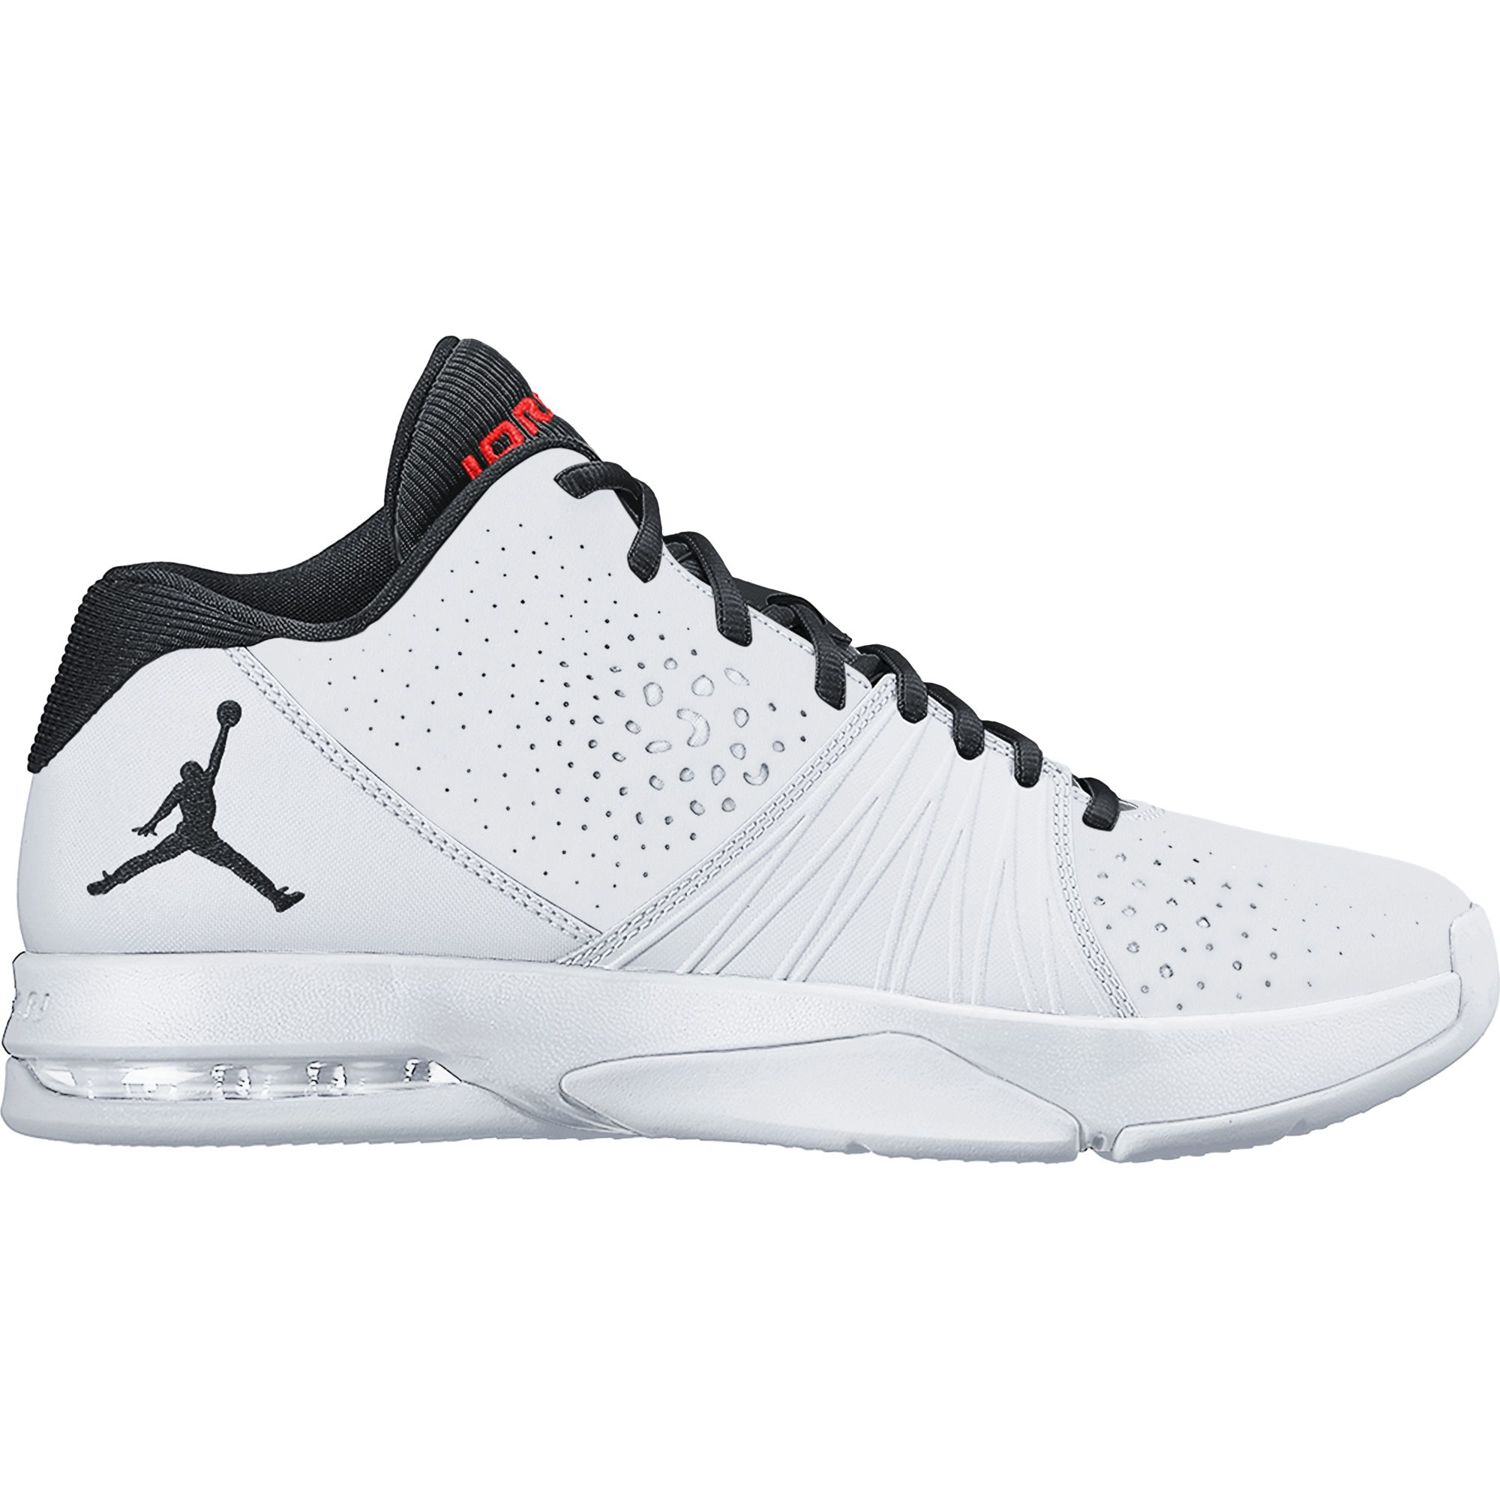 Jordan 5 AM White/Black 807546 102